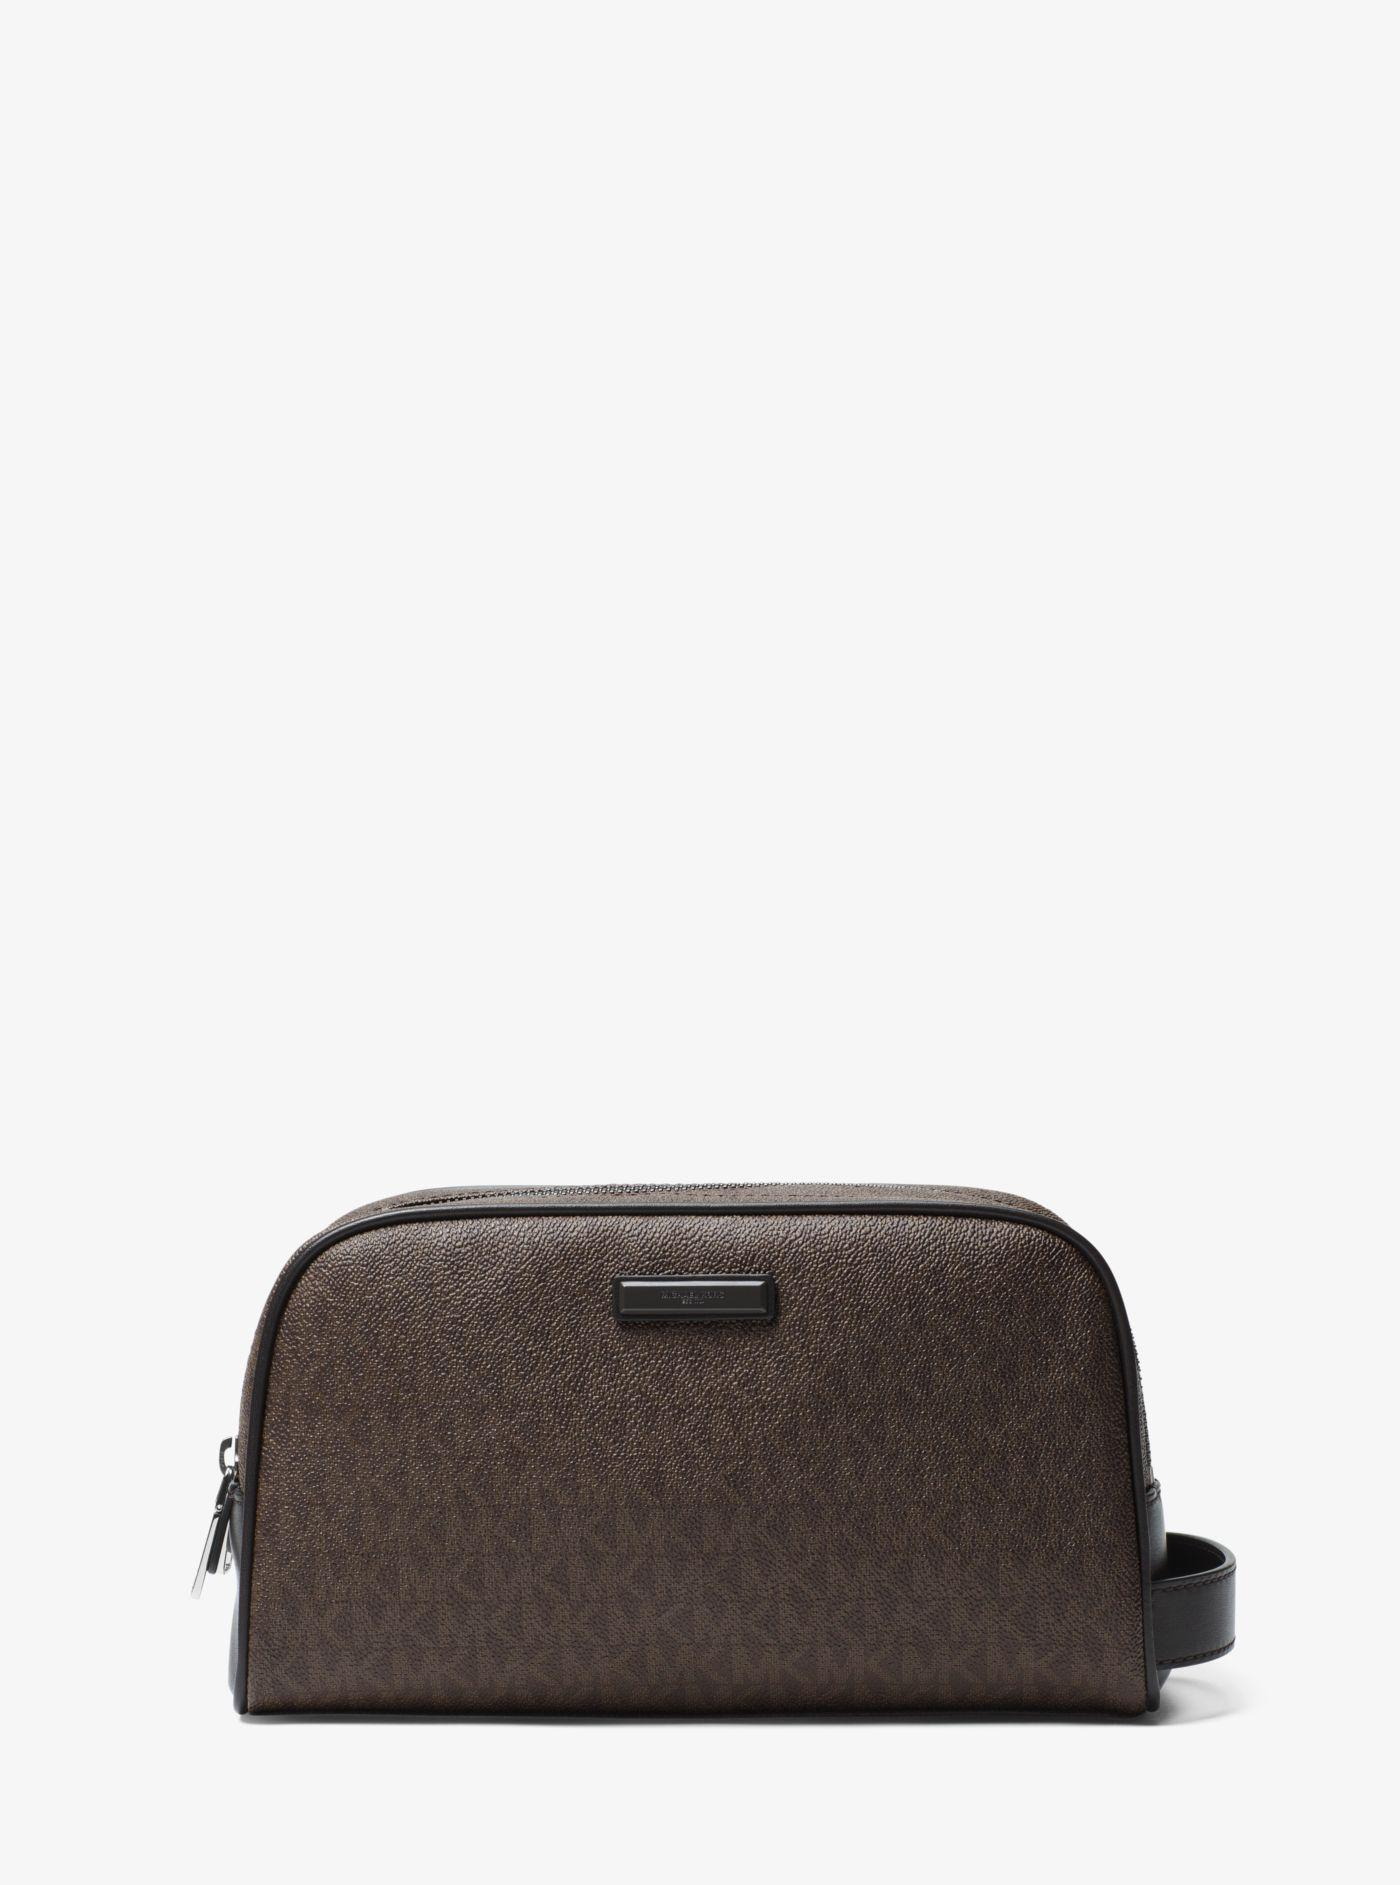 f825f4fd8bf78 Lyst - Michael Kors Jet Set Logo Double-zip Travel Case in Brown for Men